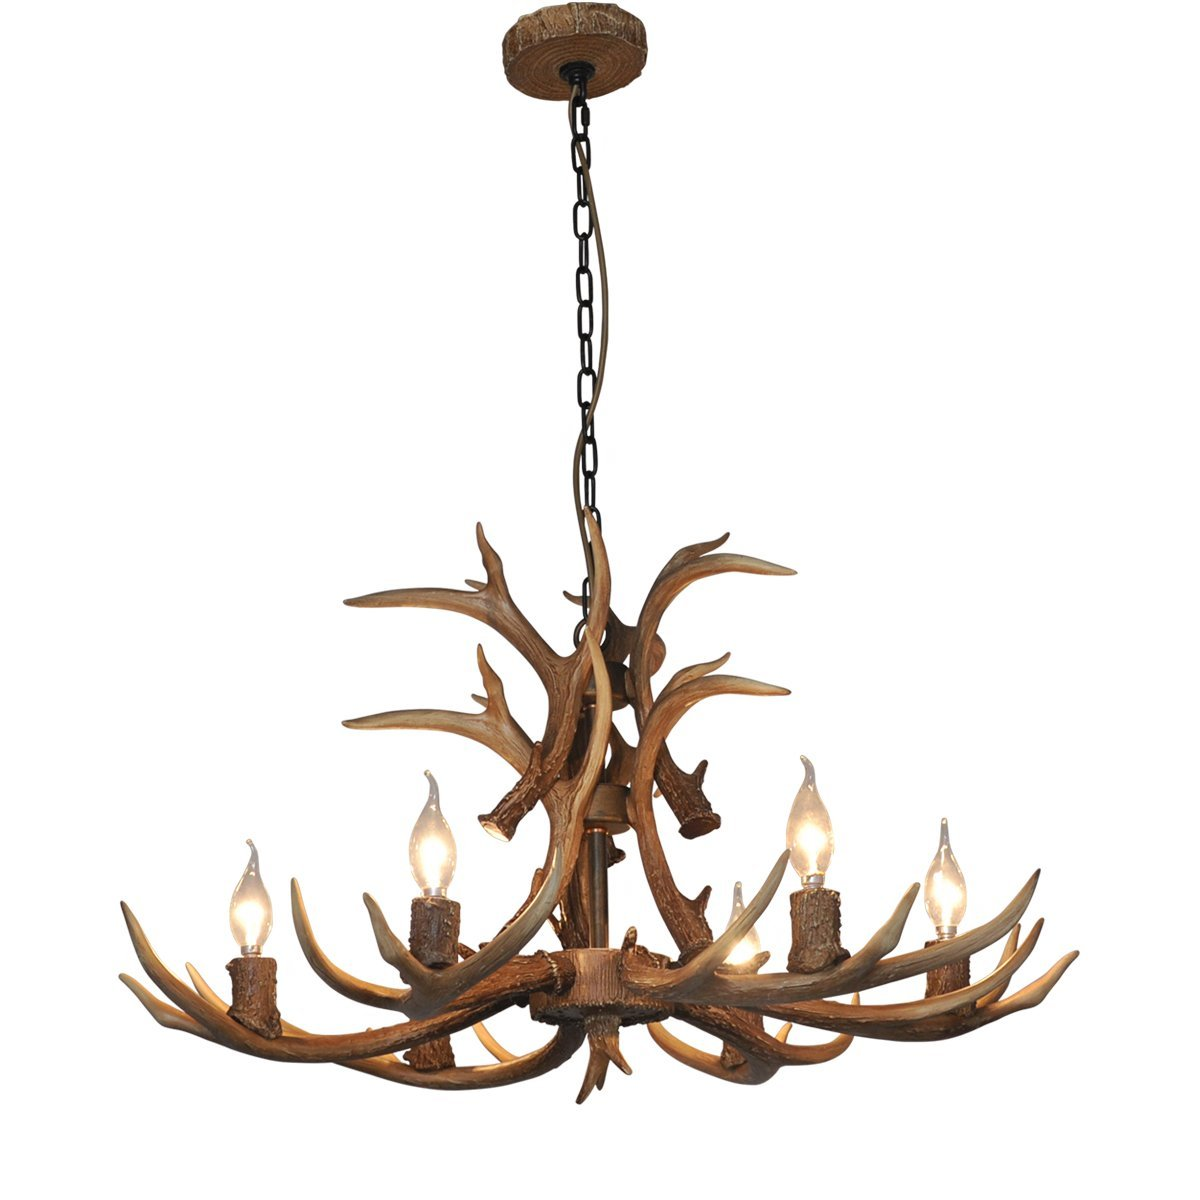 Deer Horn E12 BUlb 6-Light Iron Resin Industrial Retro Chandelier Coffee